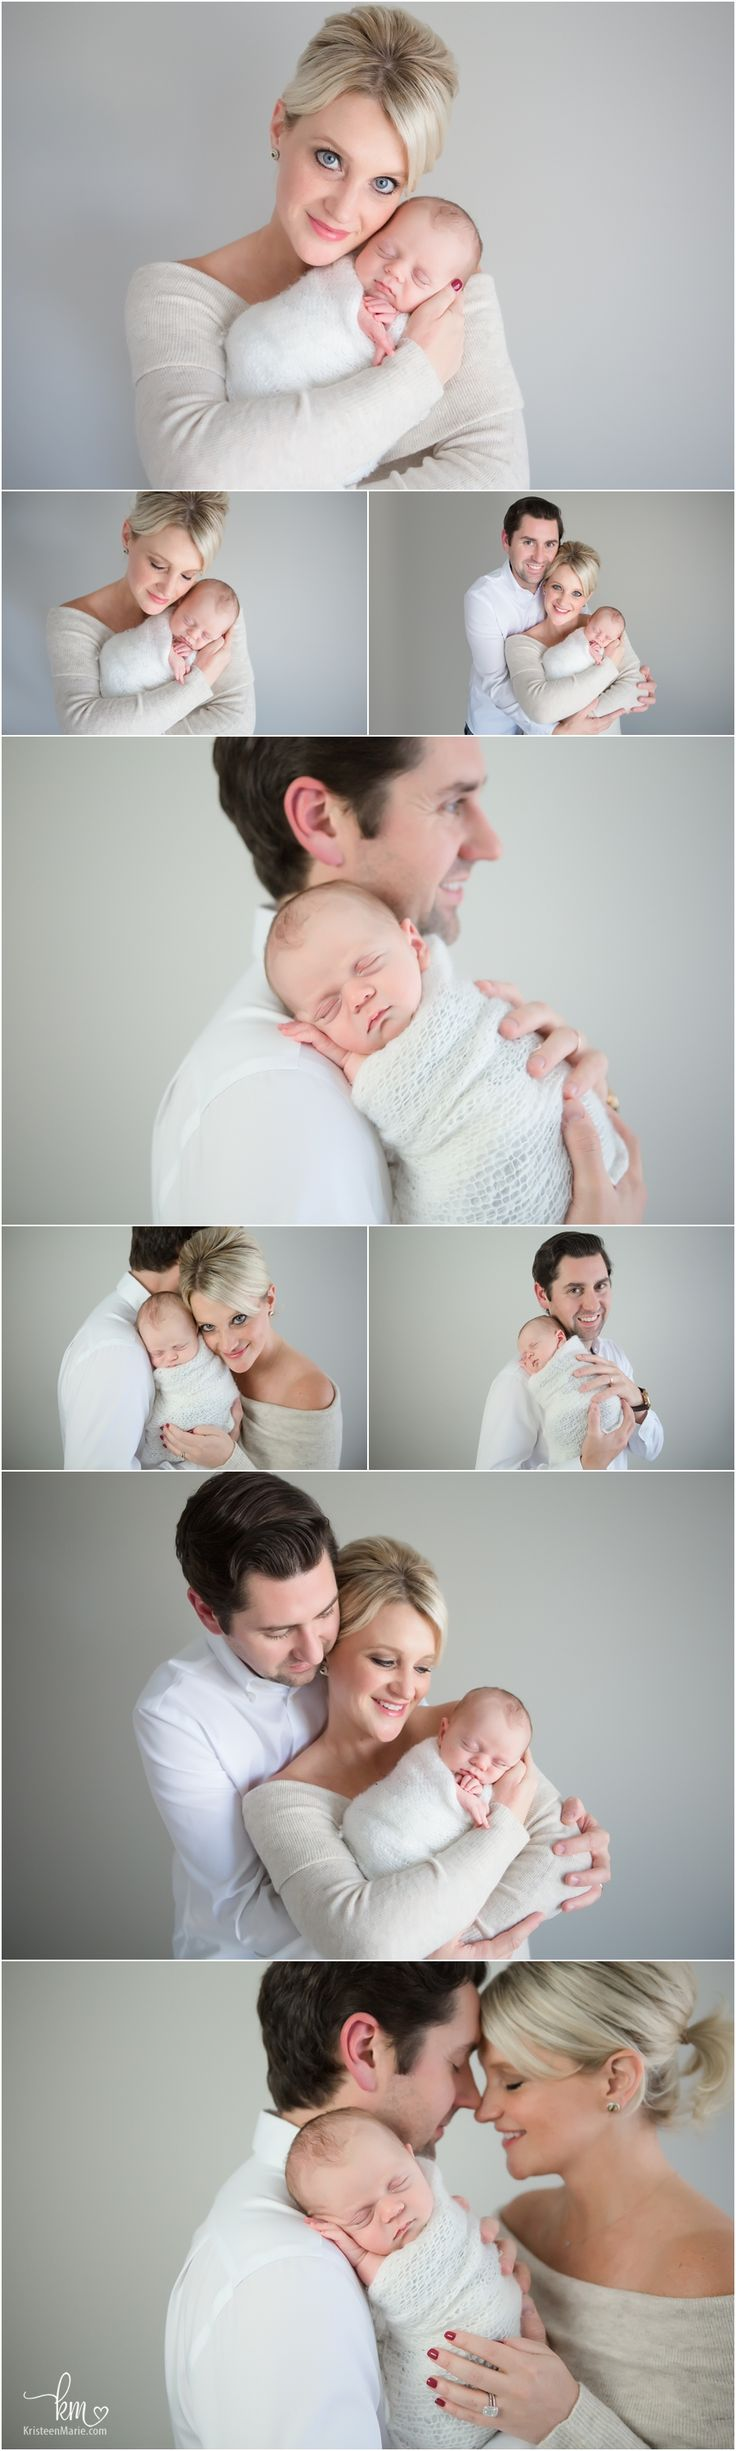 parents with newborn baby boy  - Newborn photography - Meadoria